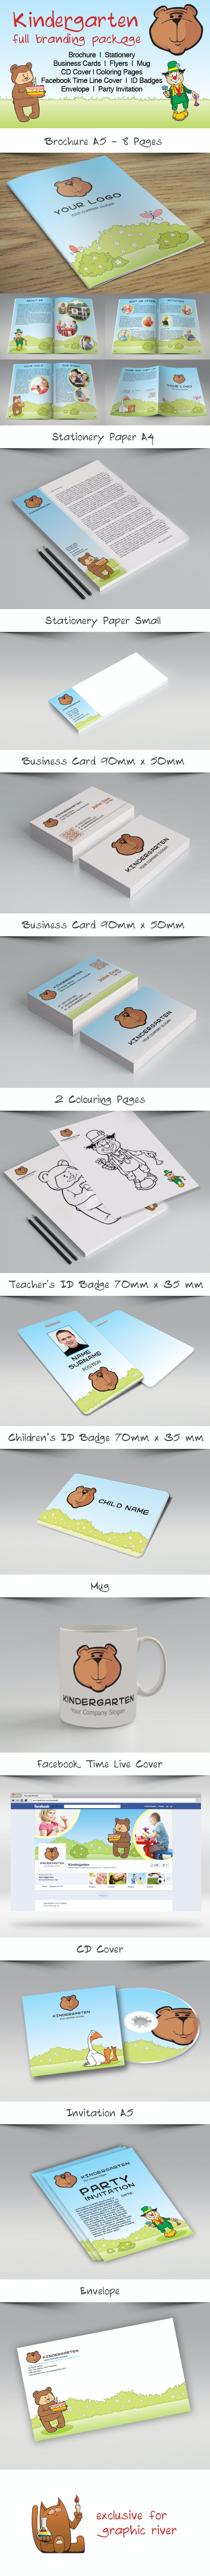 Kindergarten Full Branding Package - Corporate Brochures